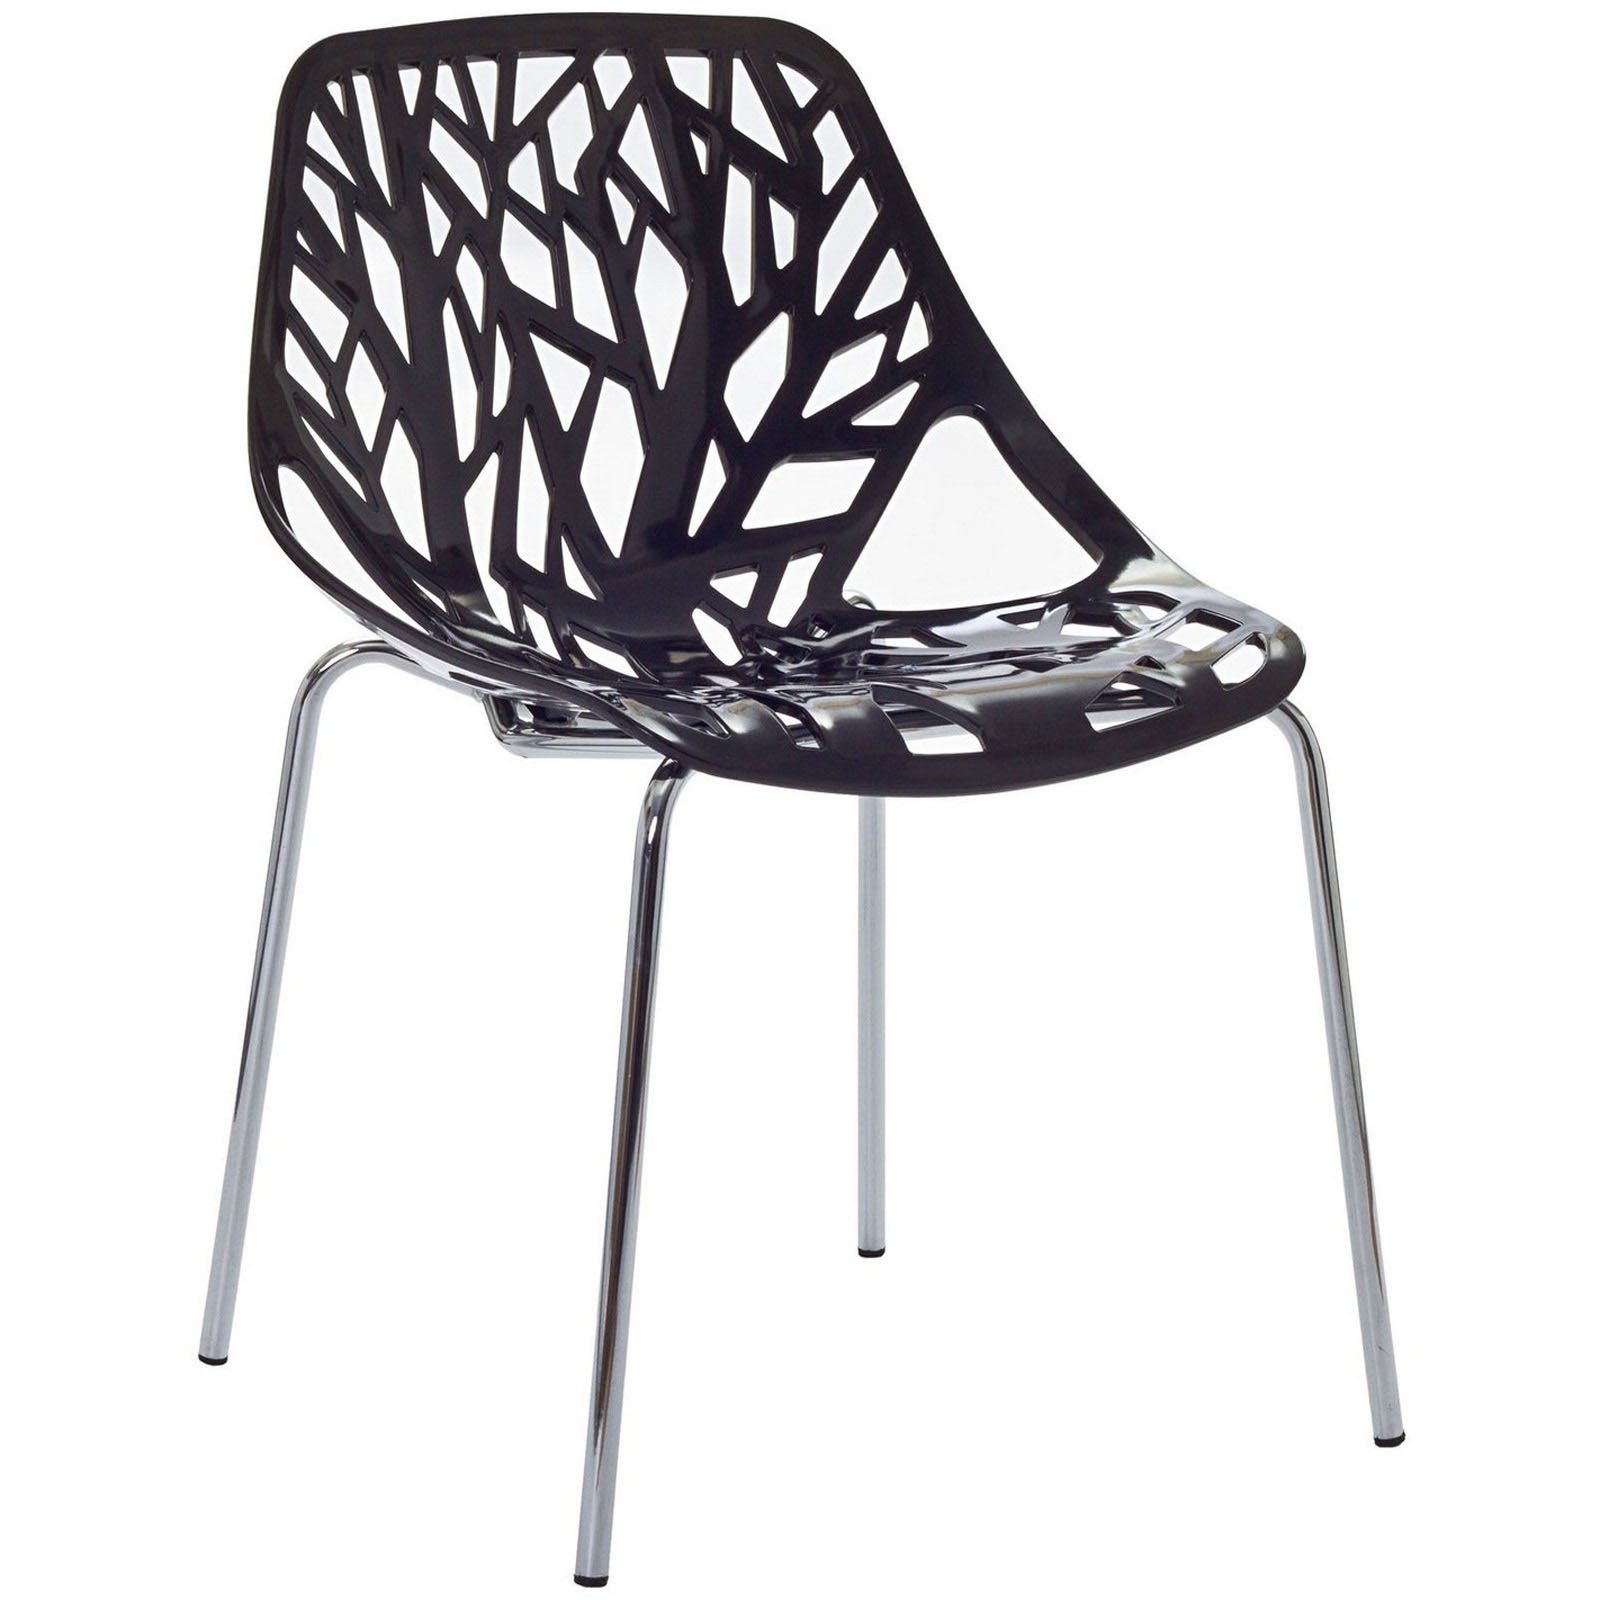 Modern Dining Chair, Black, Outdoor and Indoor